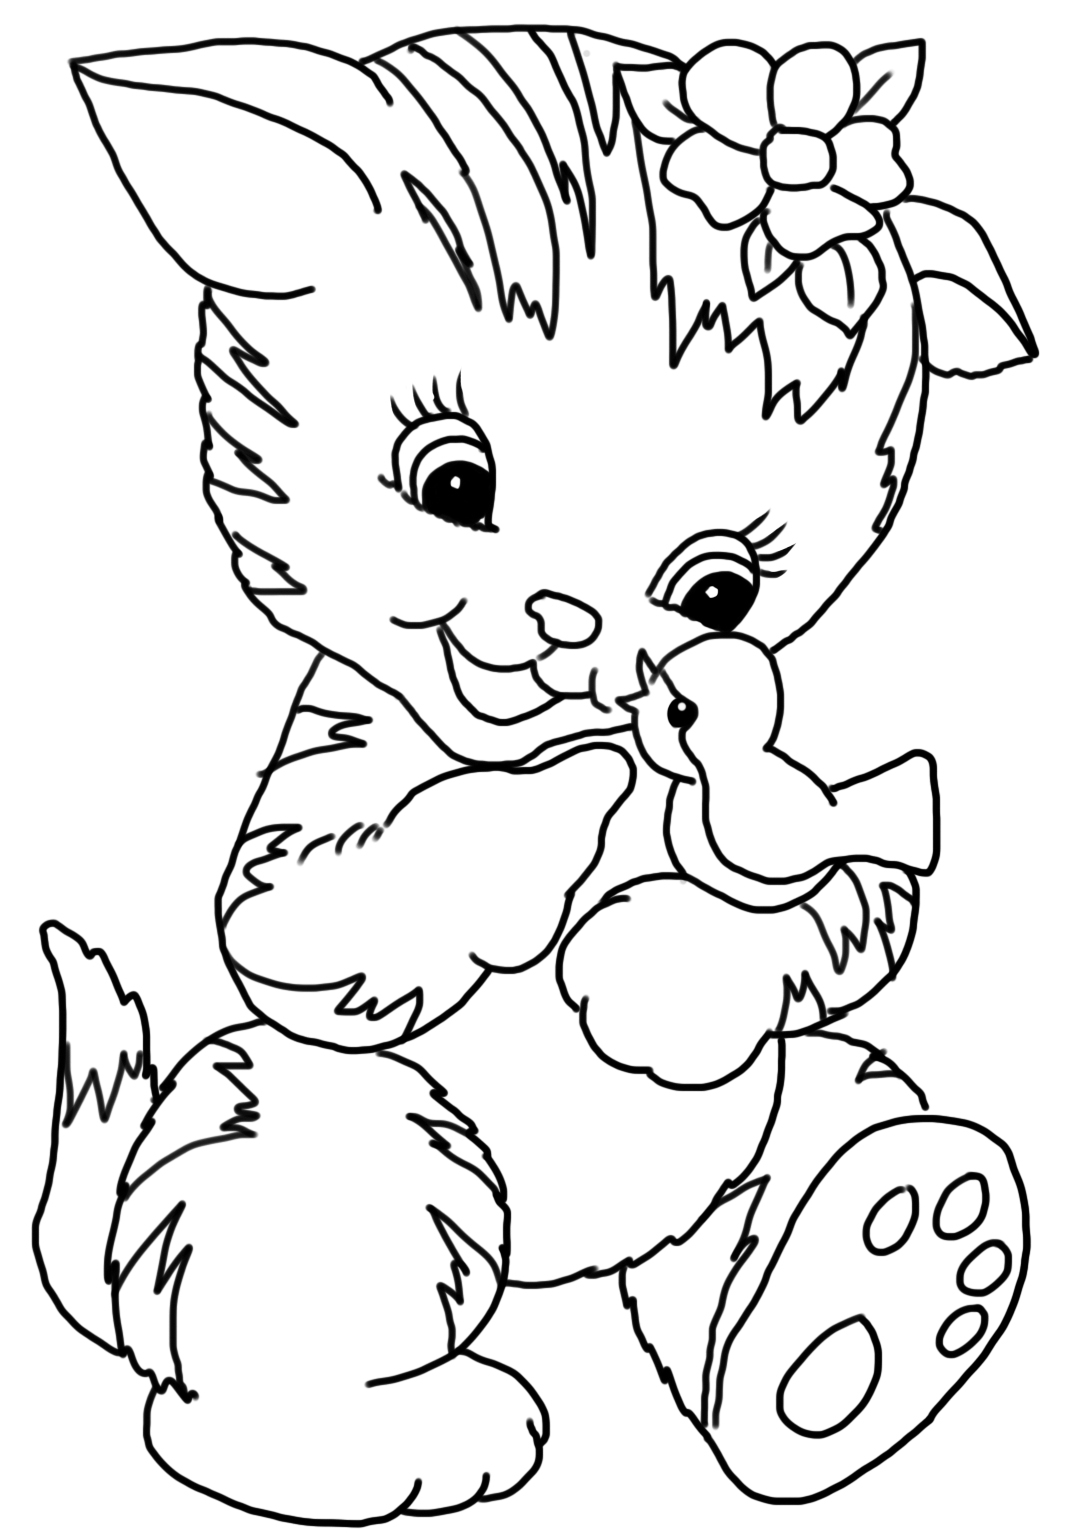 cat coloring page cute cat with bird